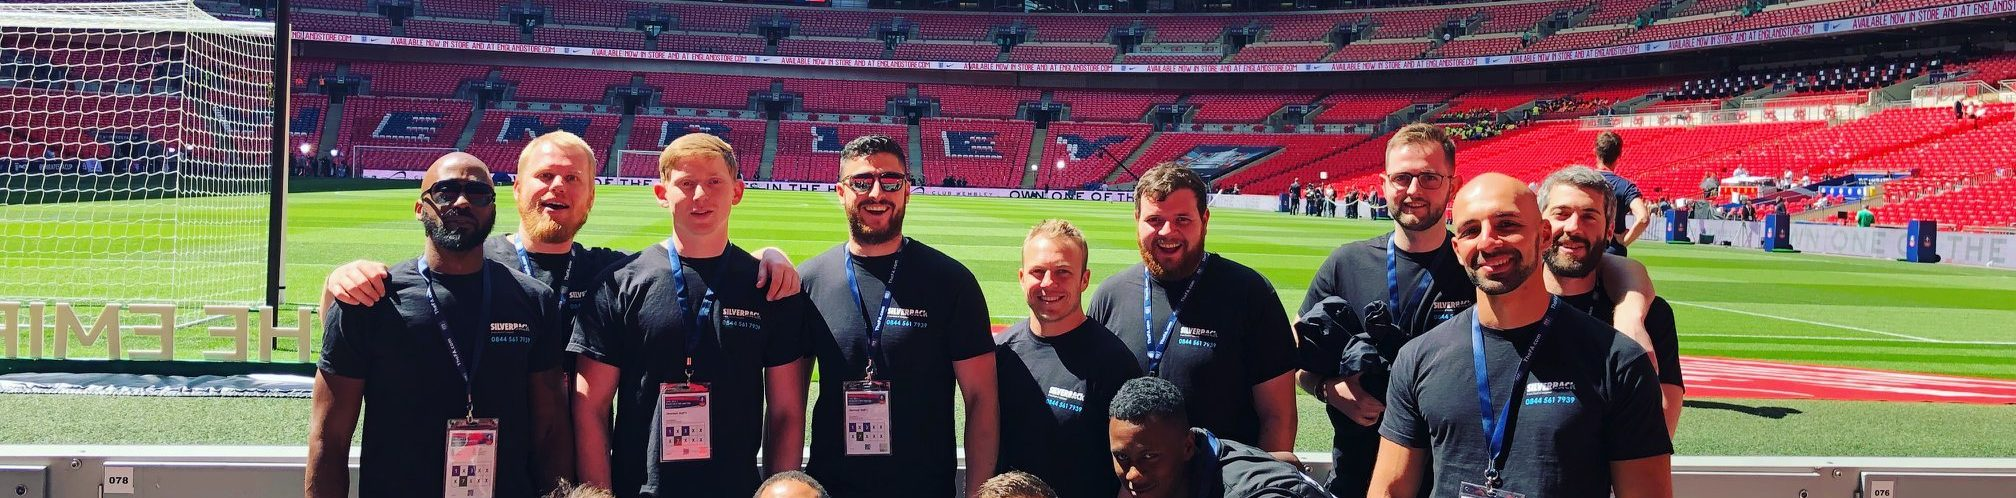 Looking for a career in the events industry? Silverback is hiring!